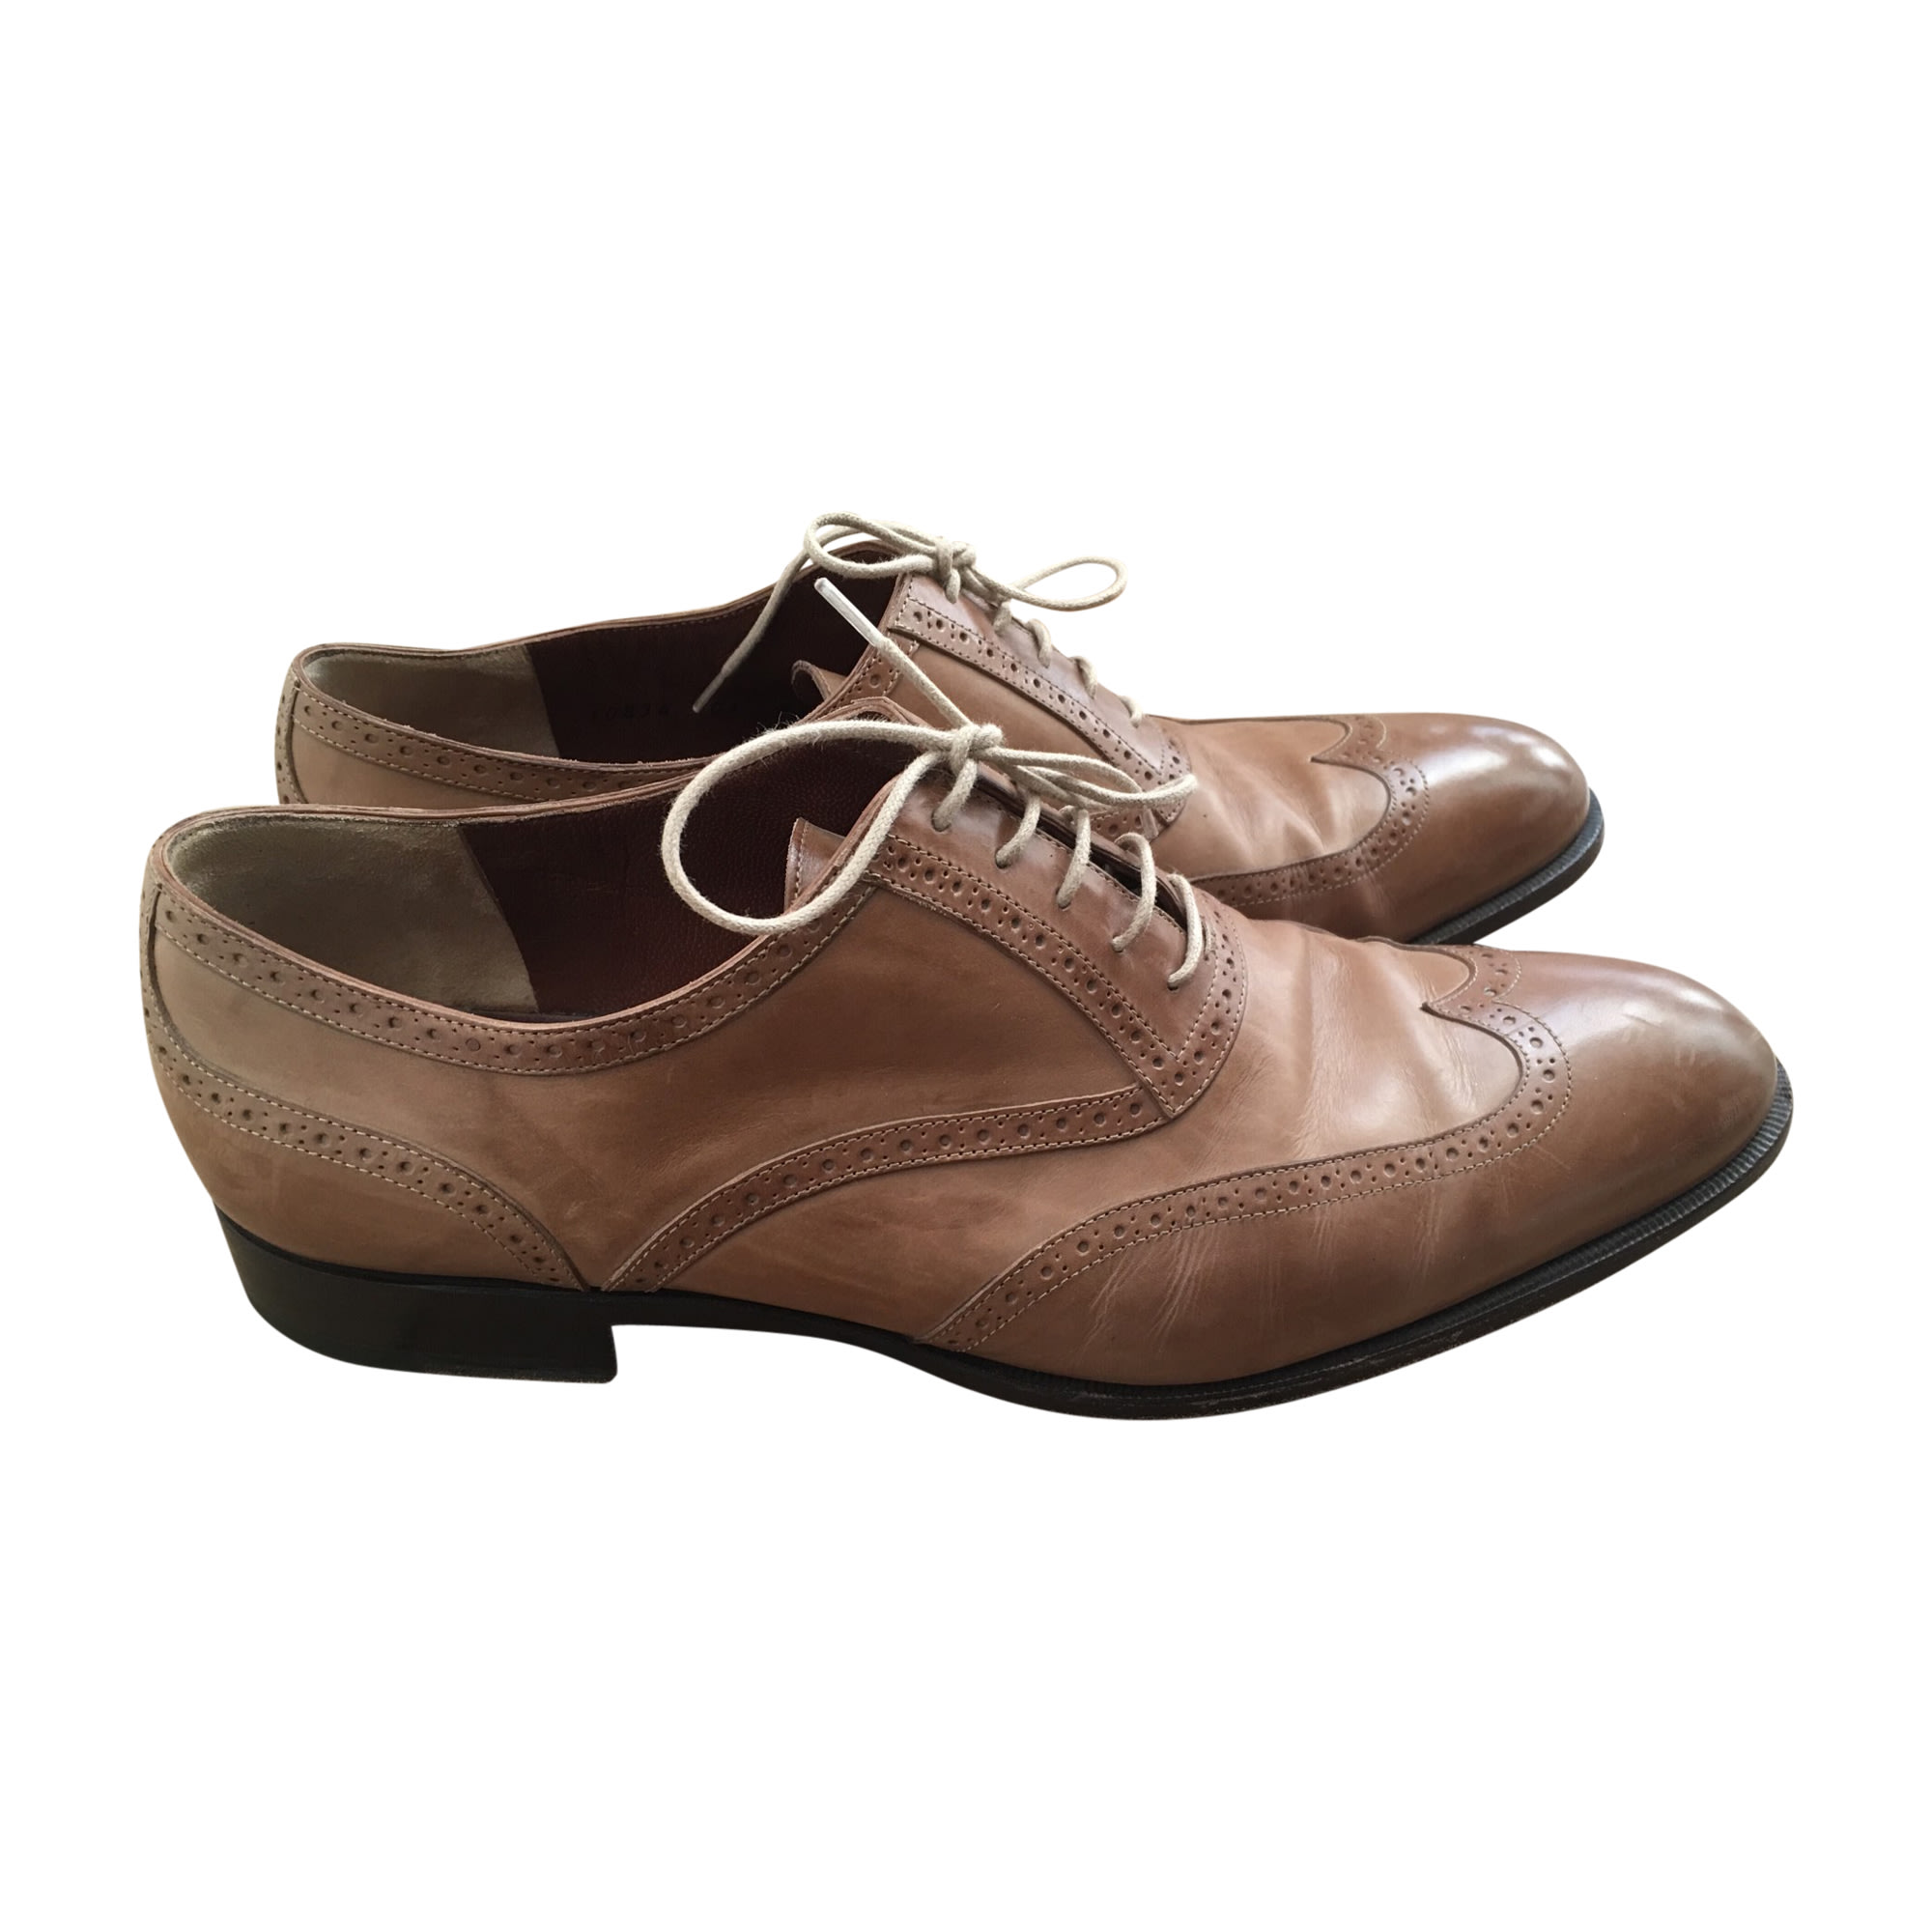 Chaussures à lacets FRATELLI ROSSETTI Beige, camel